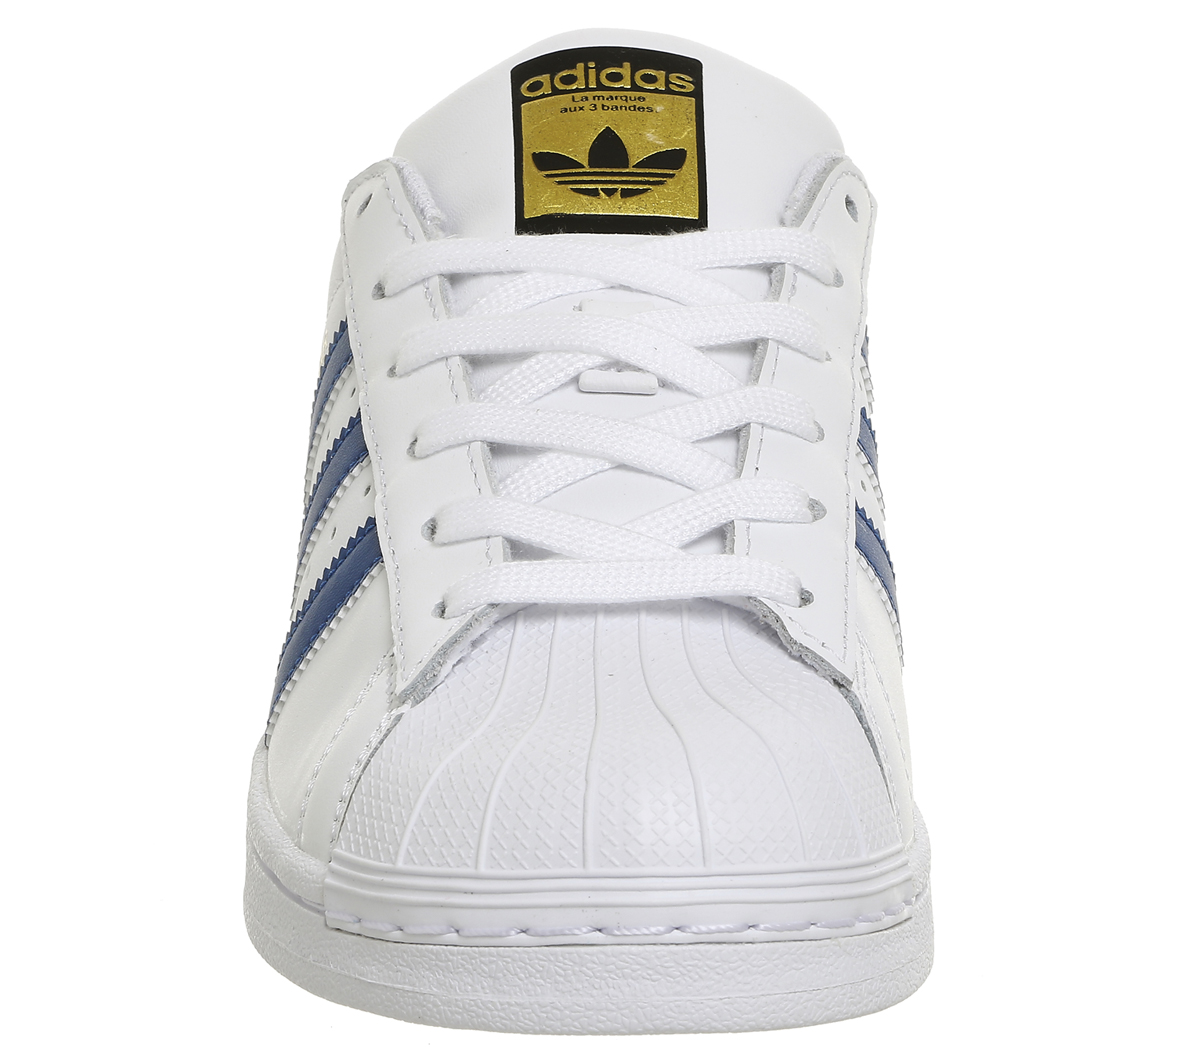 Womens-Adidas-Superstar-Trainers-WHITE-BLUE-Trainers-Shoes